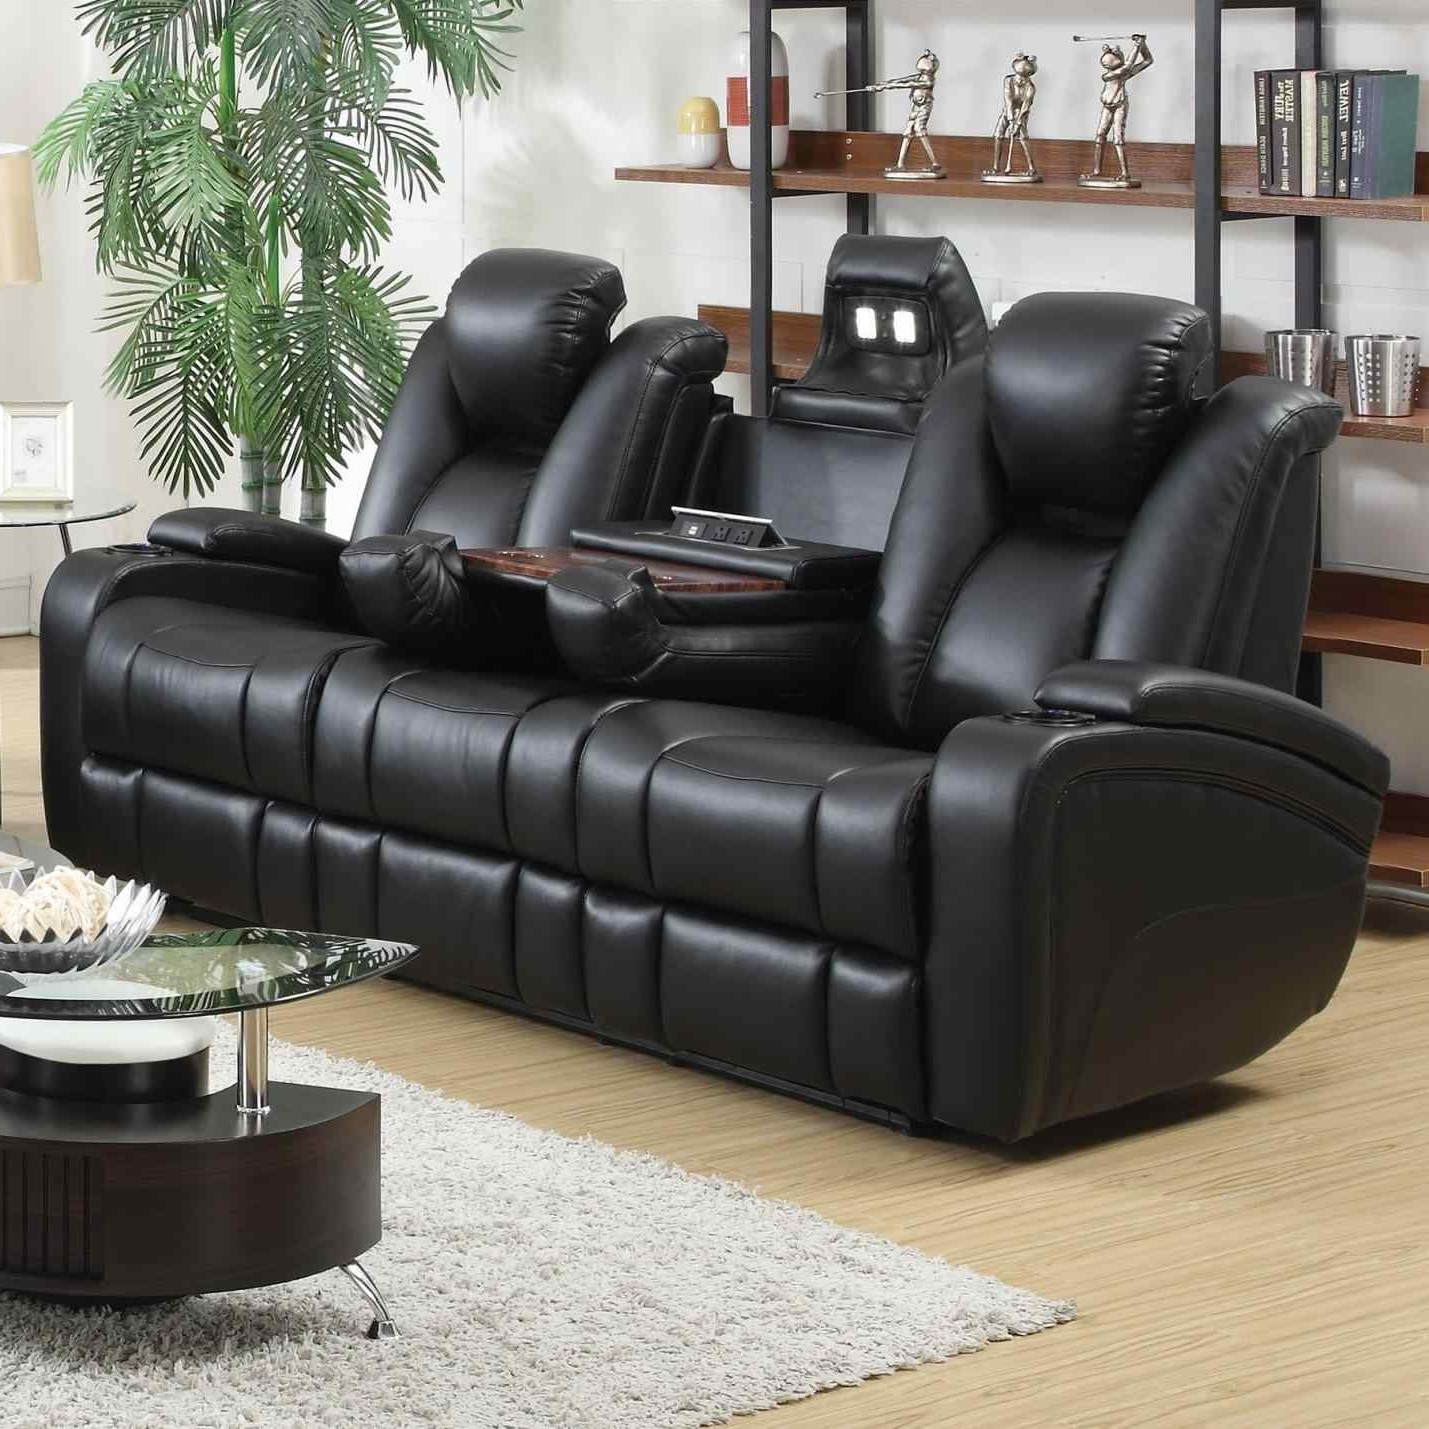 Widely Used The Images Collection Of Furniture Row Recliners Design Awesome For Layaway Sectional Sofas (View 20 of 20)